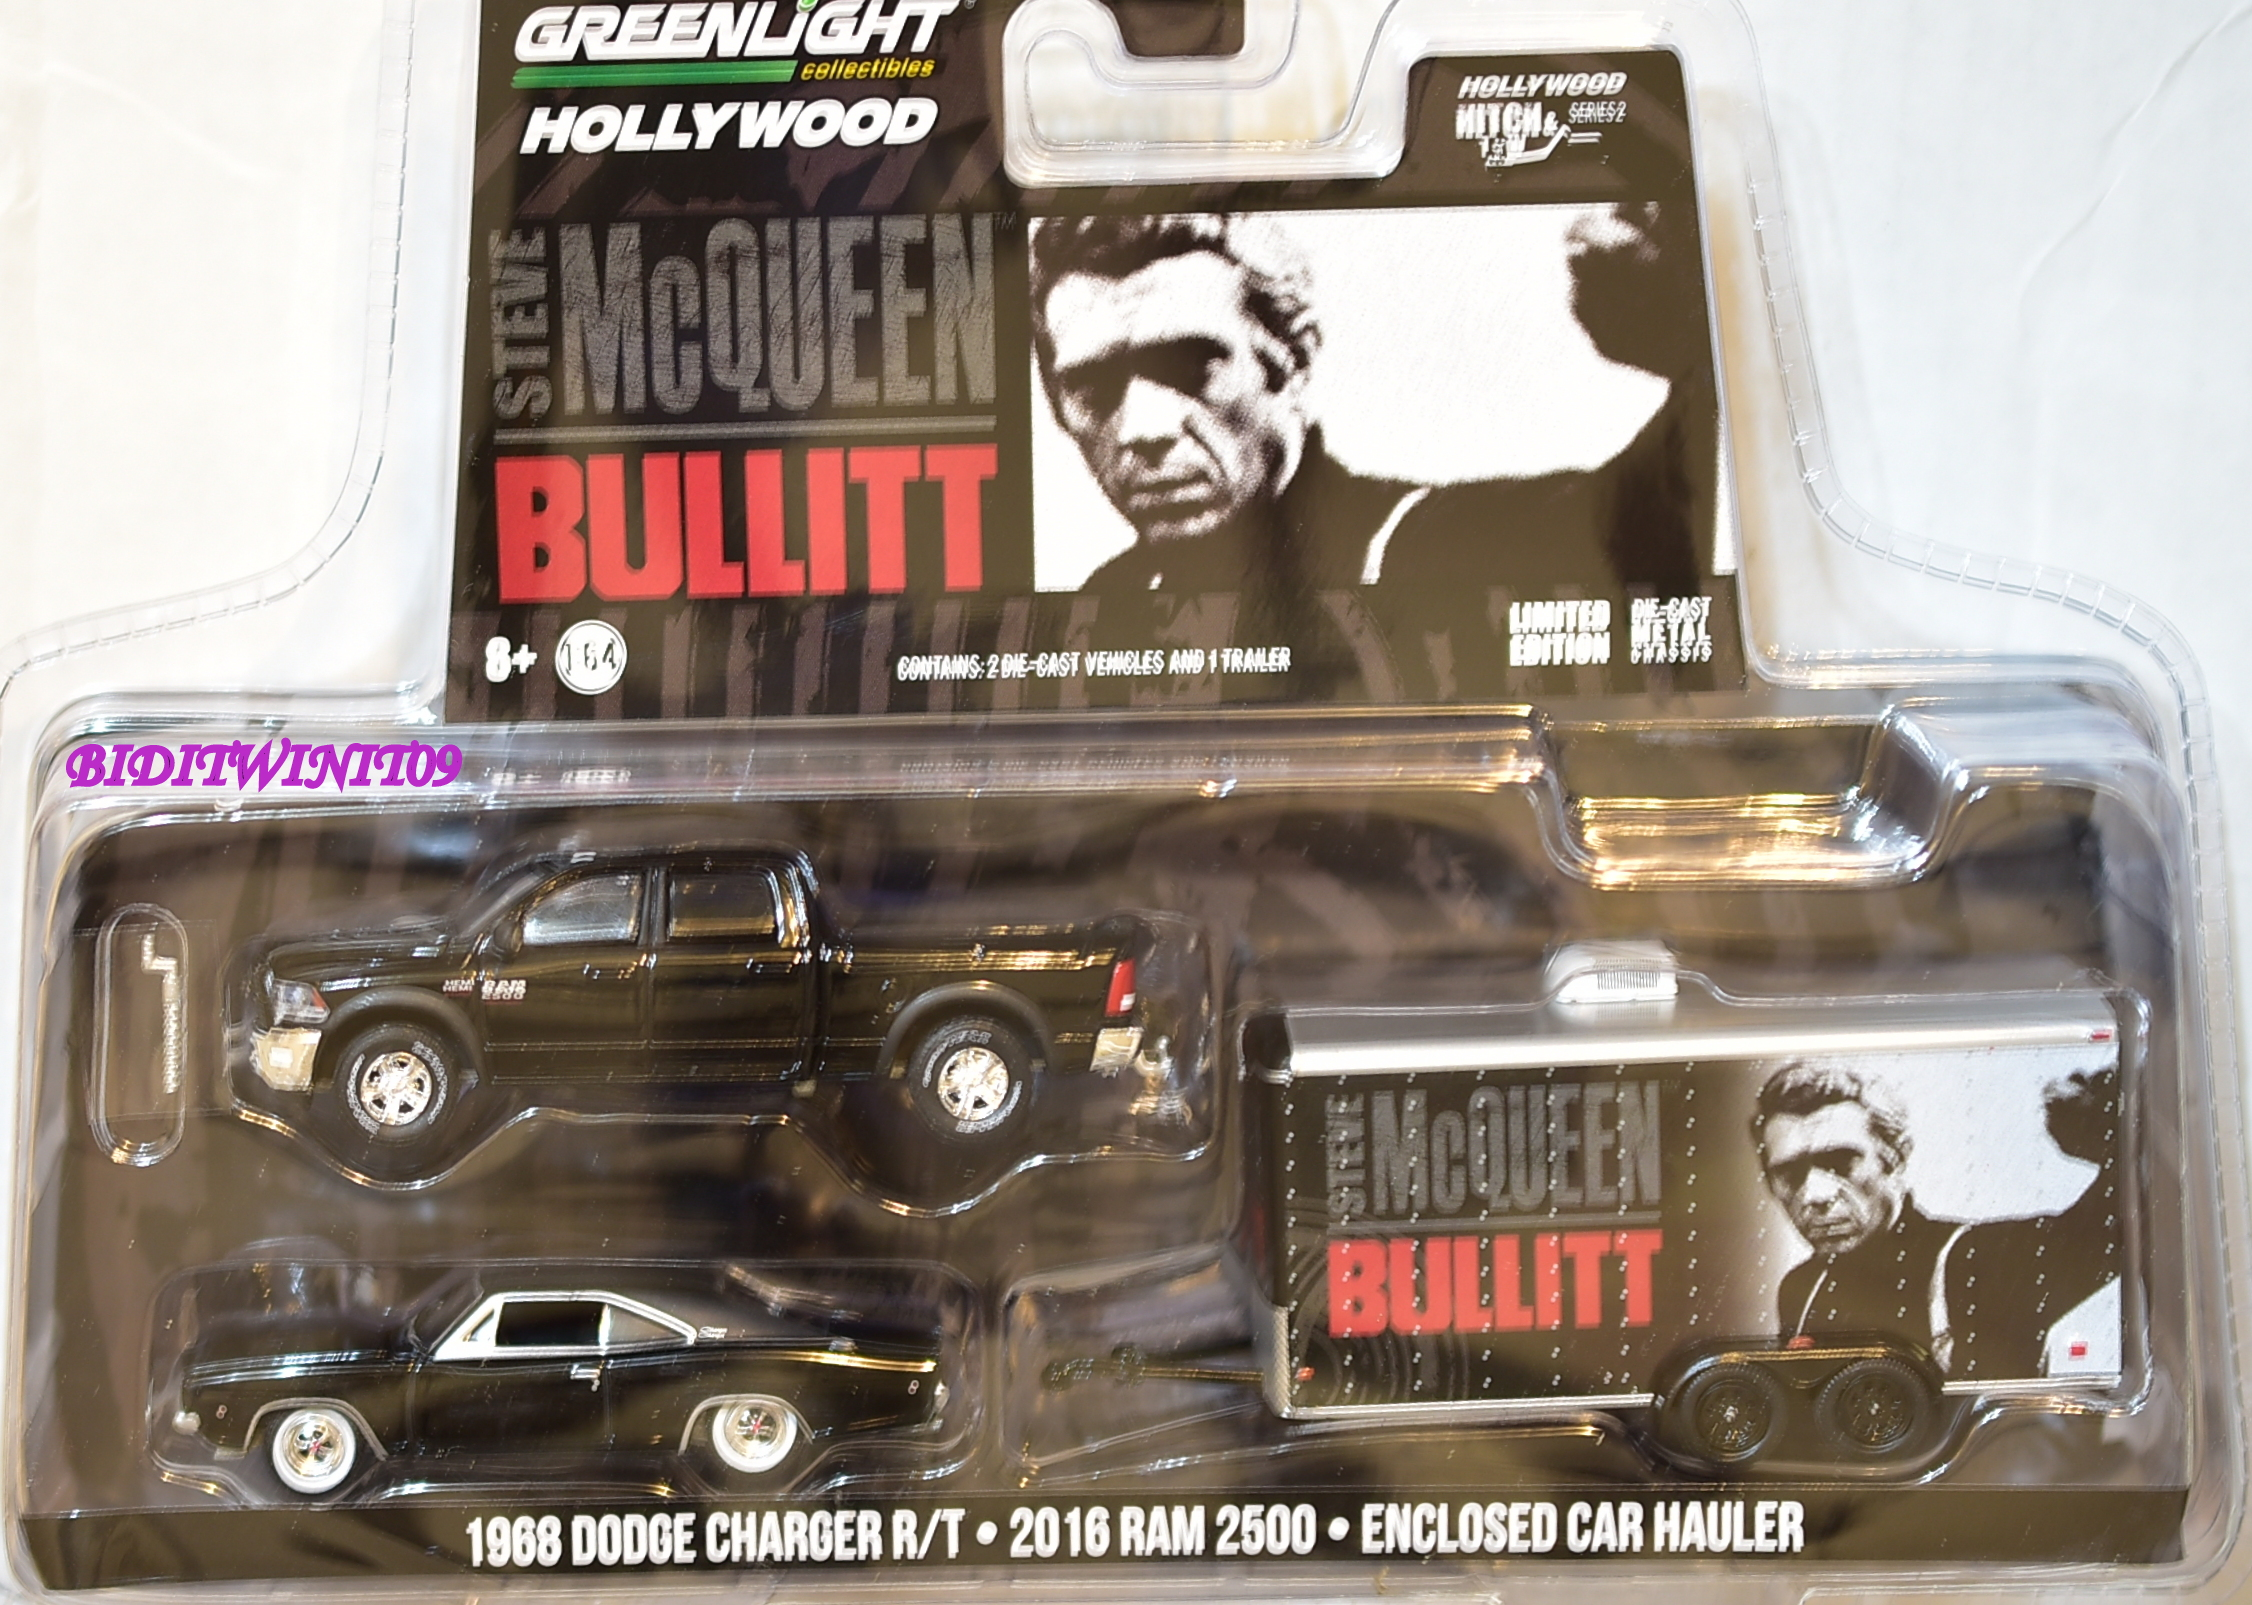 GREENLIGHT HITCH & TOW 1968 DODGE CHARGER R/T . 2016 RAM 2500 E+